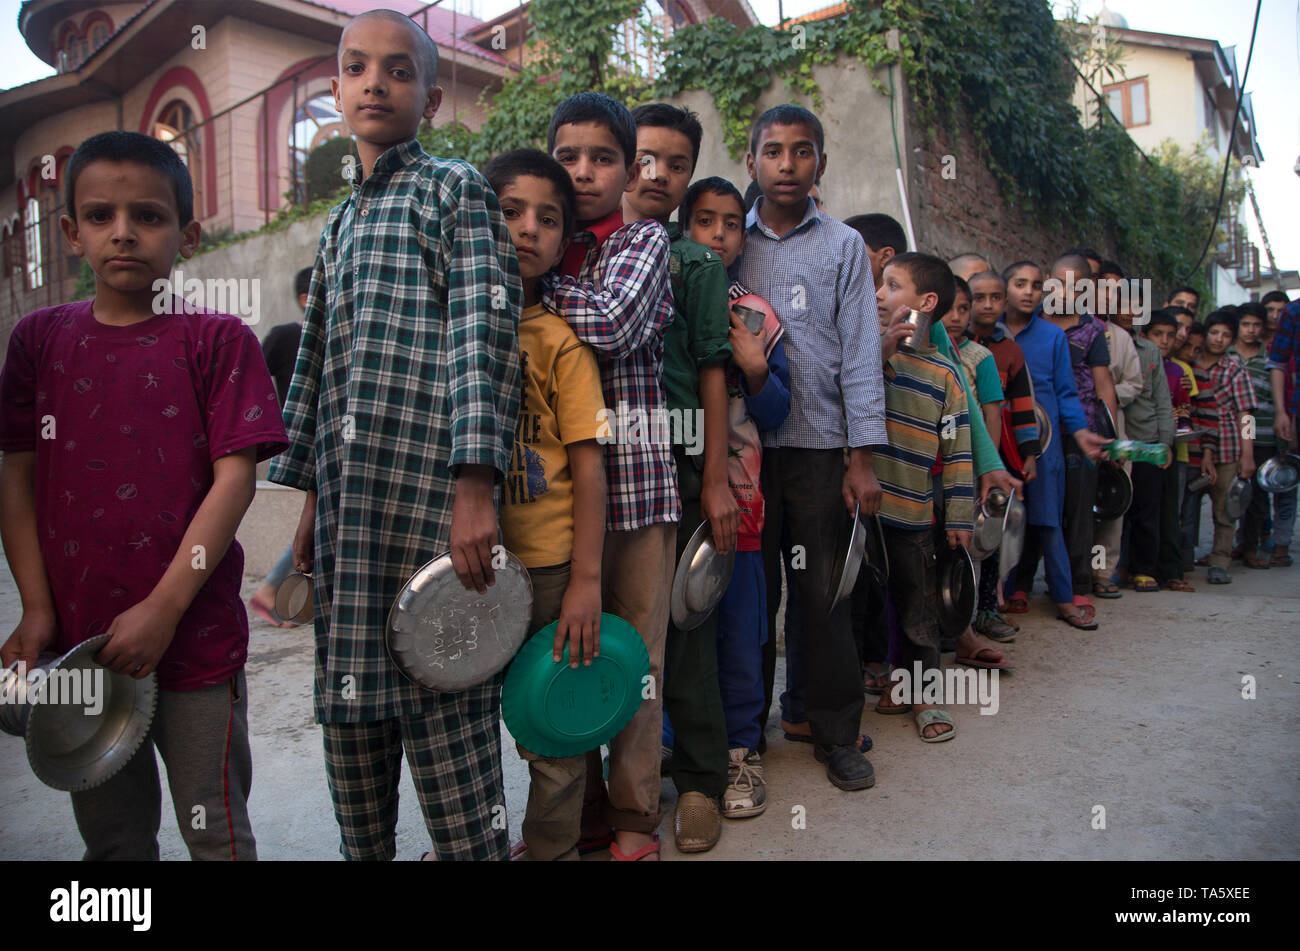 Srinagar, Indian-controlled Kashmir. 21st May, 2019. Kashmiri Muslim orphans line up to get food for Iftar, or fast-breaking meal, at an orphanage when Muslims break their fast during the holy month of Ramadan in Srinagar, the summer capital of Indian-controlled Kashmir, May 21, 2019. Credit: Javed Dar/Xinhua/Alamy Live News - Stock Image